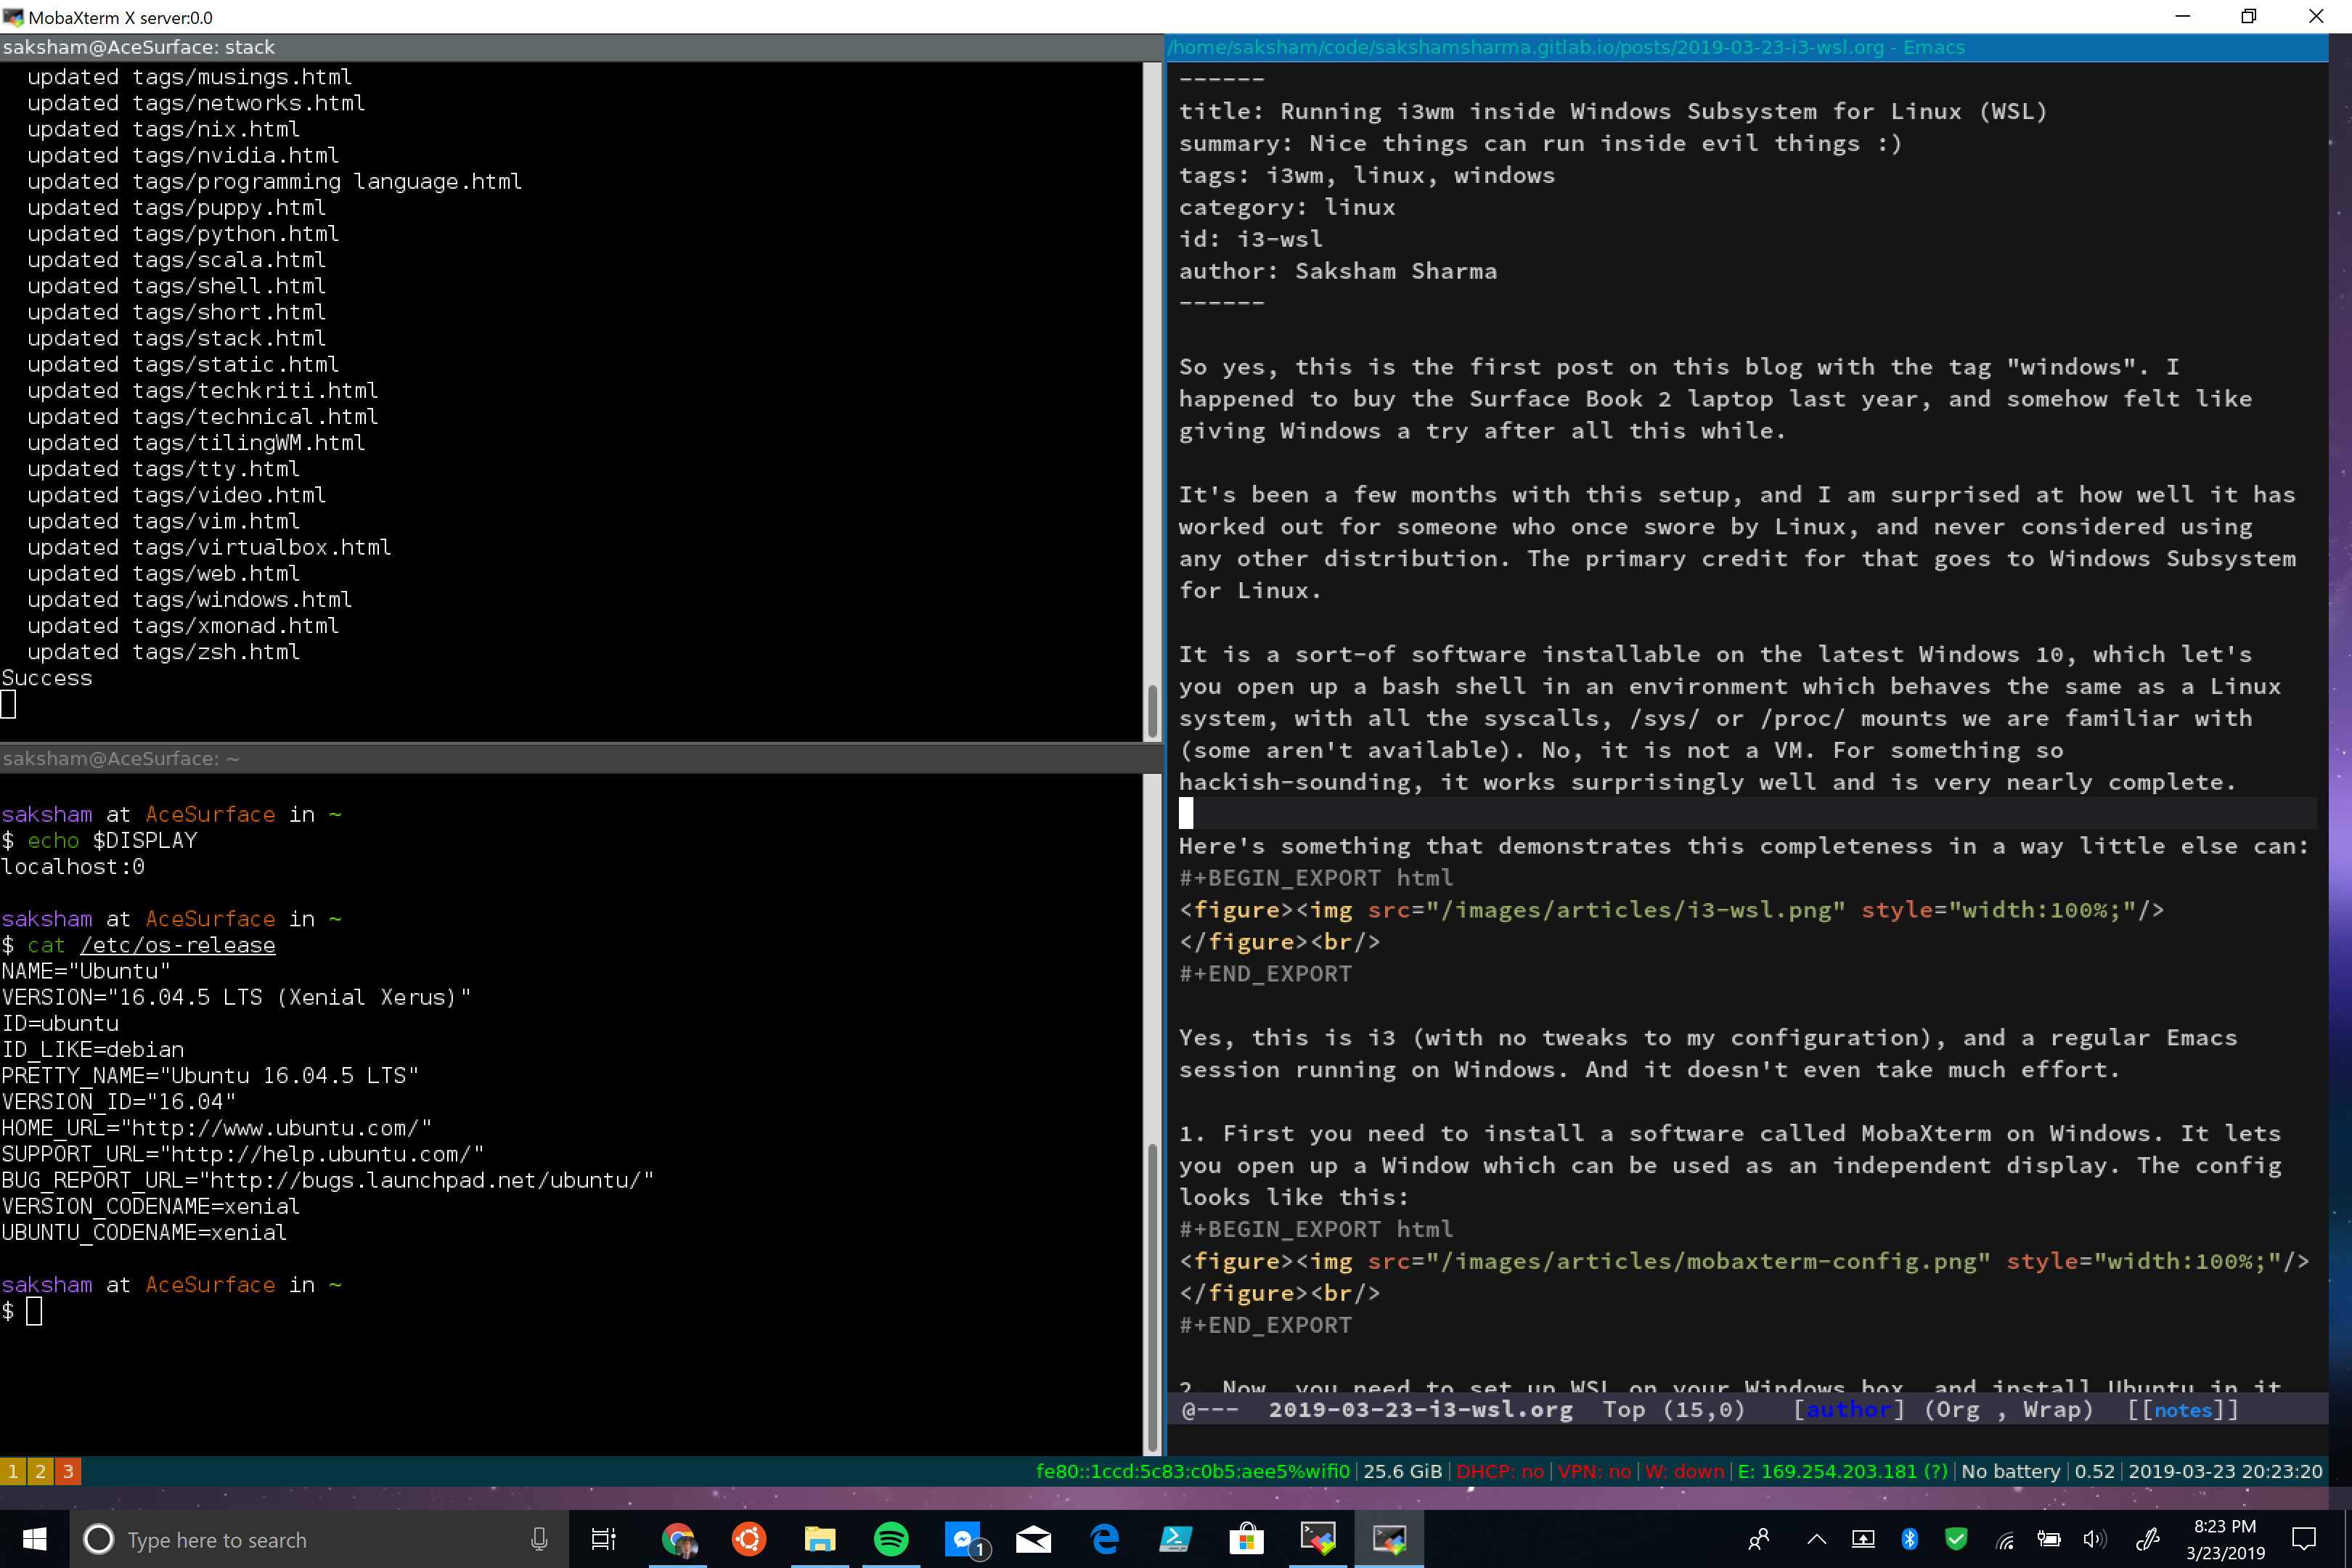 AceHack-Running i3wm inside Windows Subsystem for Linux (WSL), and